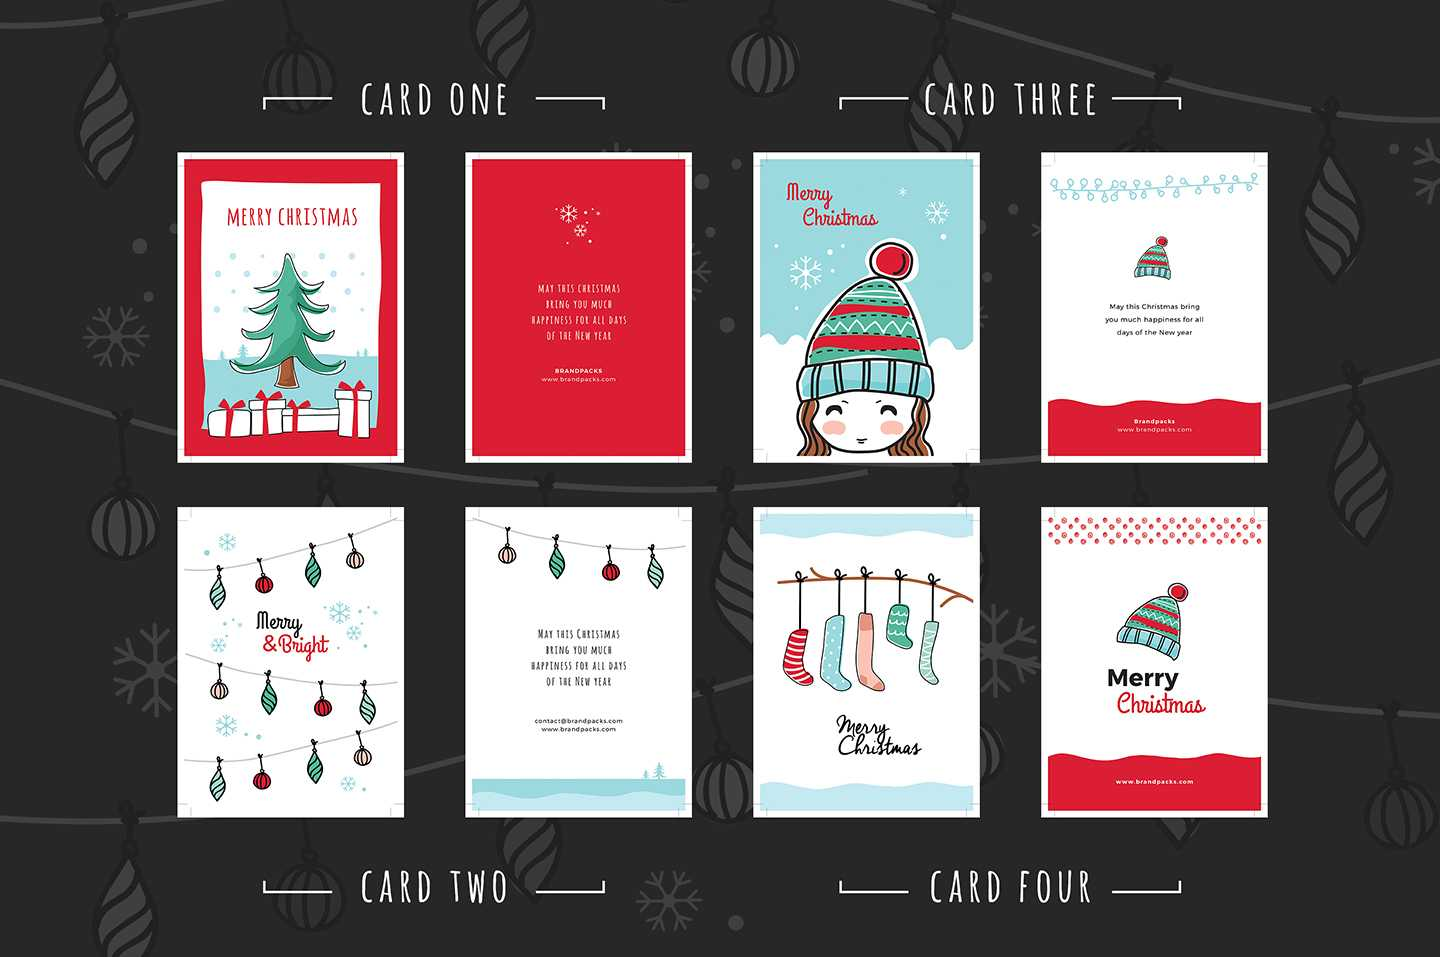 Free Christmas Card Templates For Photoshop & Illustrator Pertaining To Christmas Photo Card Templates Photoshop